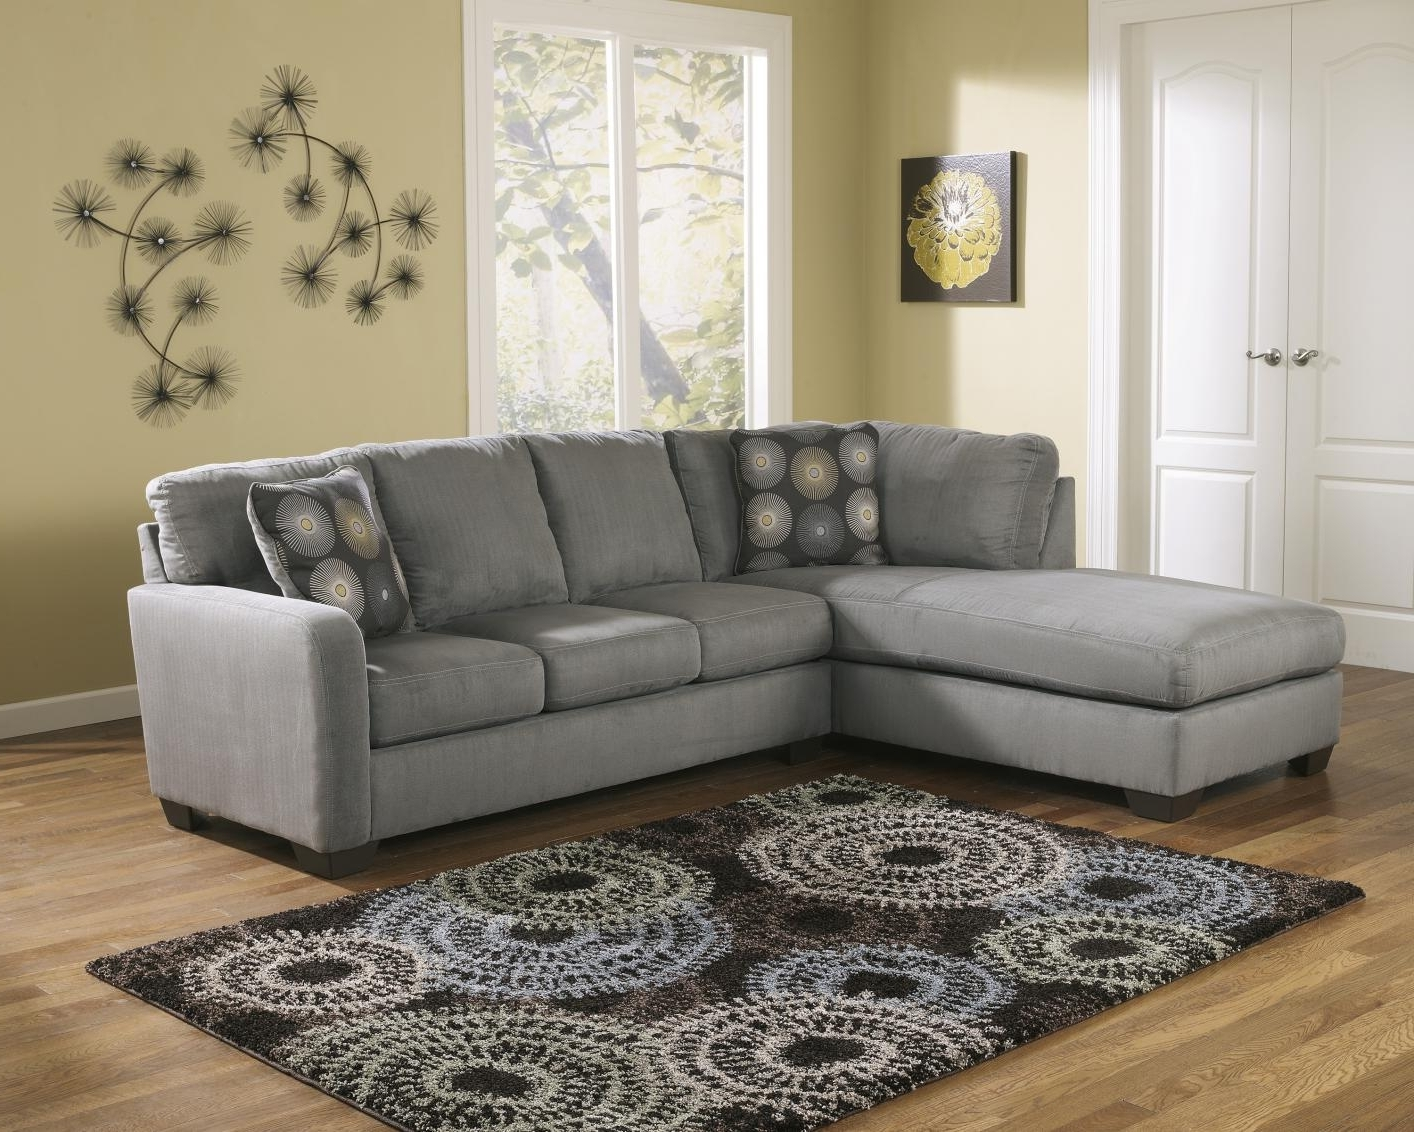 Preferred Fabric Sectional Sofas Intended For Grey Fabric Sectional Sofa – Steal A Sofa Furniture Outlet Los (View 18 of 20)